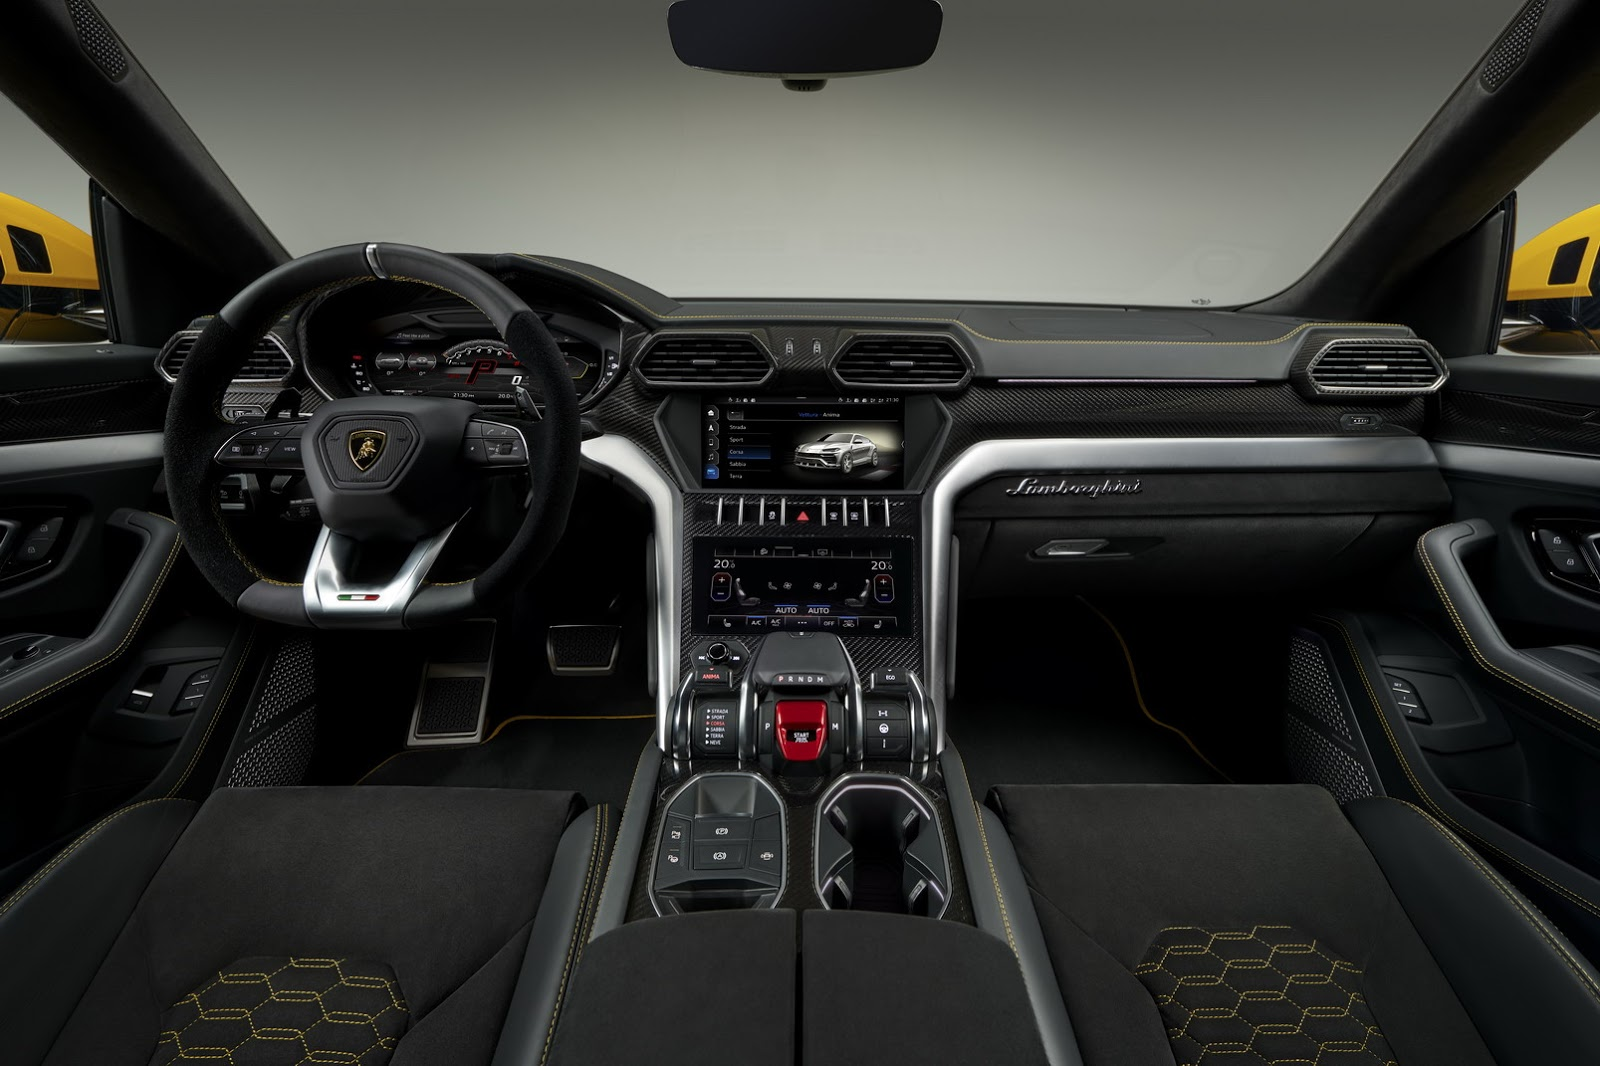 2019 lamborghini urus goes official 650 hp 305 km h. Black Bedroom Furniture Sets. Home Design Ideas